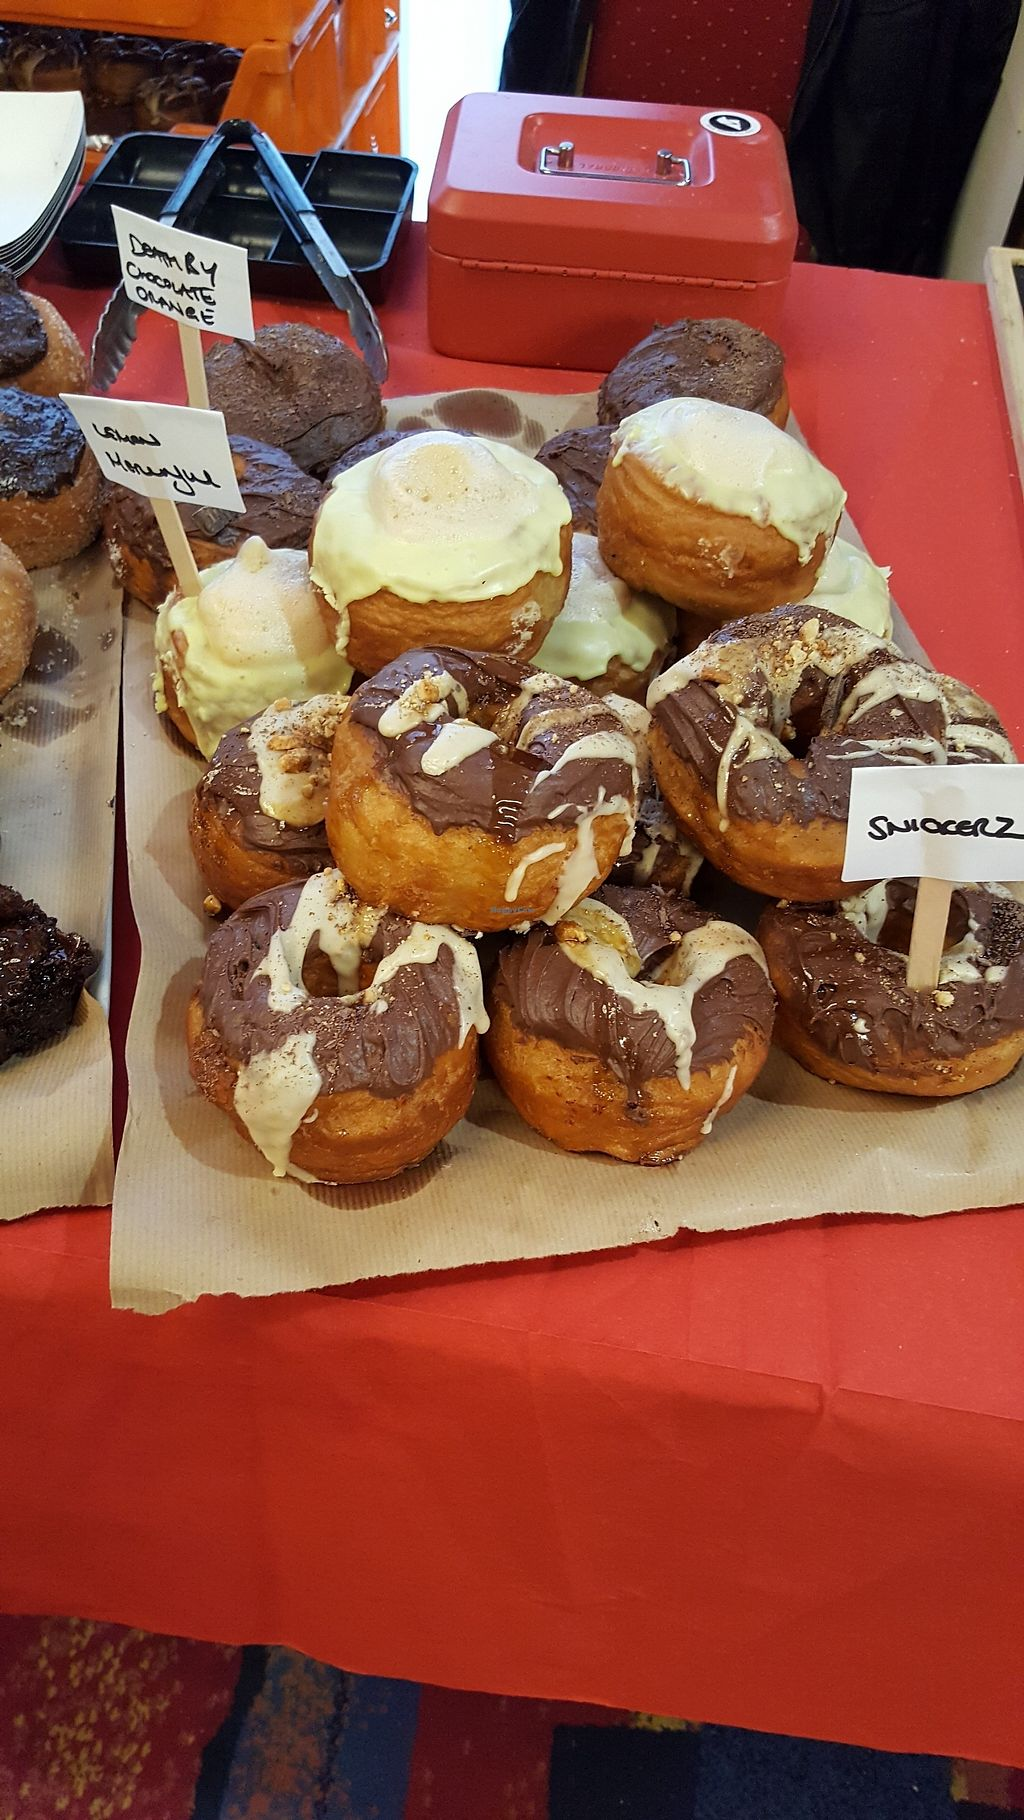 """Photo of VeganJunk  by <a href=""""/members/profile/Clare"""">Clare</a> <br/>Desserts from heaven <br/> November 12, 2017  - <a href='/contact/abuse/image/104930/324867'>Report</a>"""